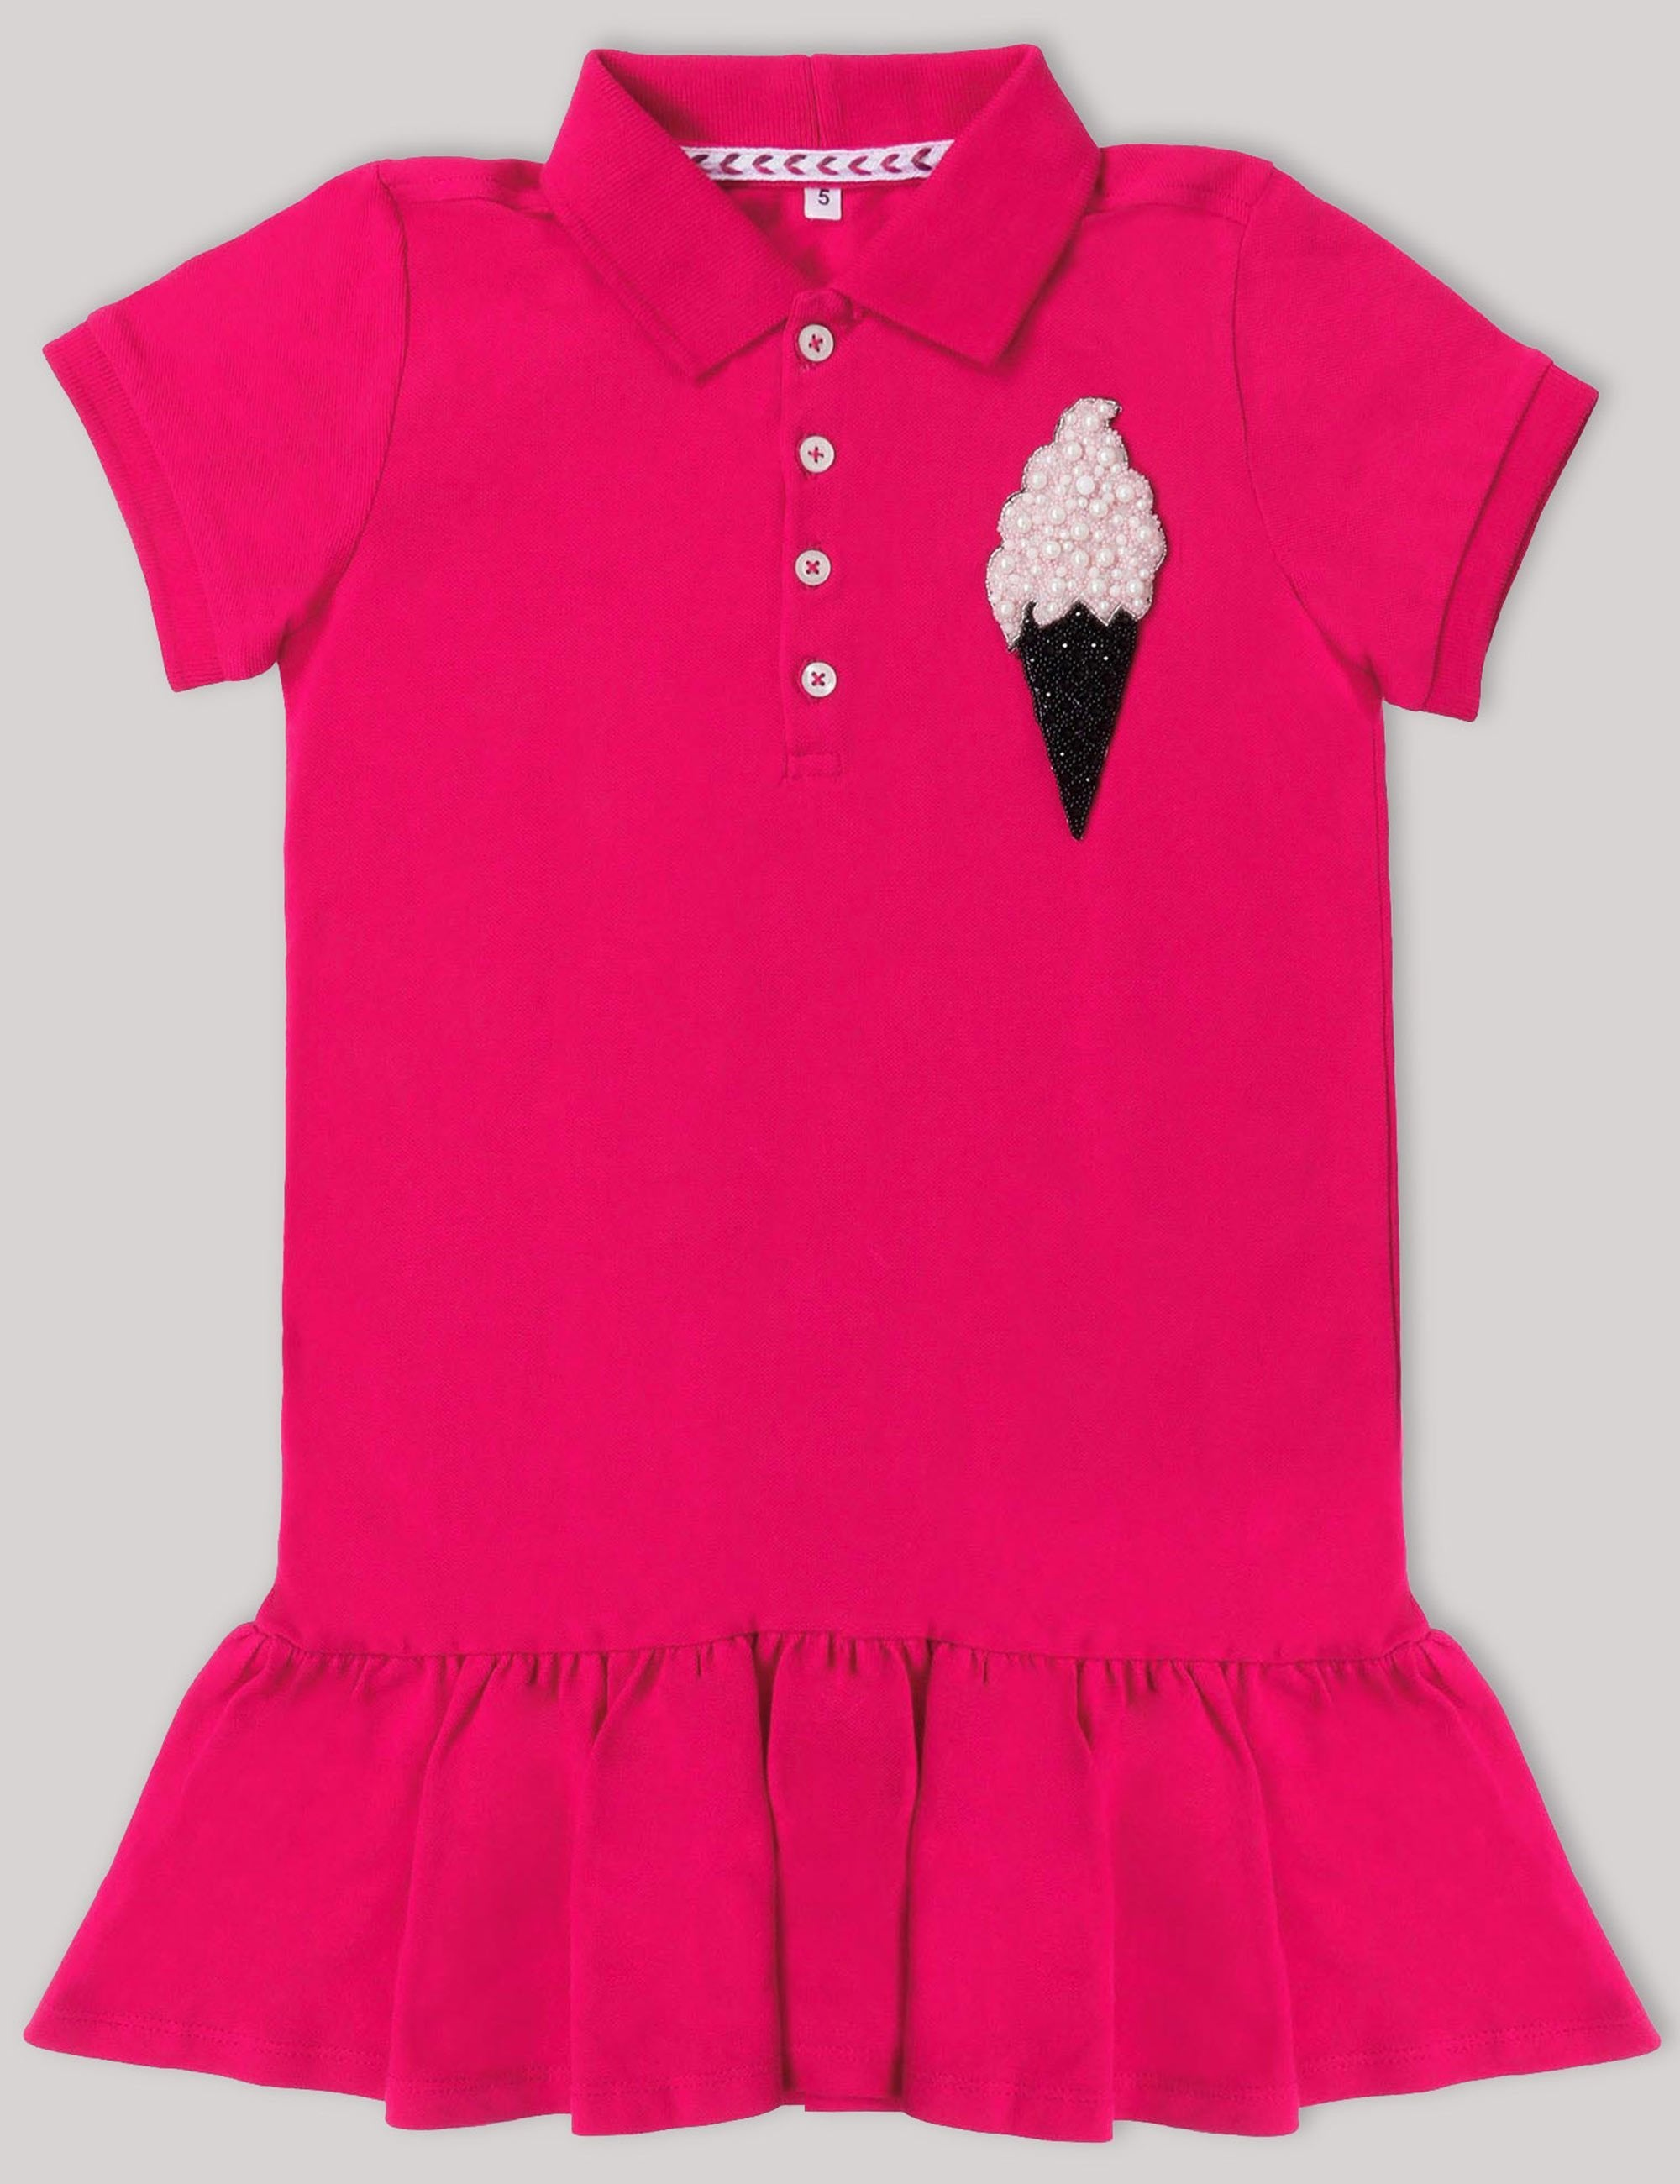 f745f0ae72 Girls Polo T-Shirt Dress with very Quirky Ice Cream Patch On a Corner .